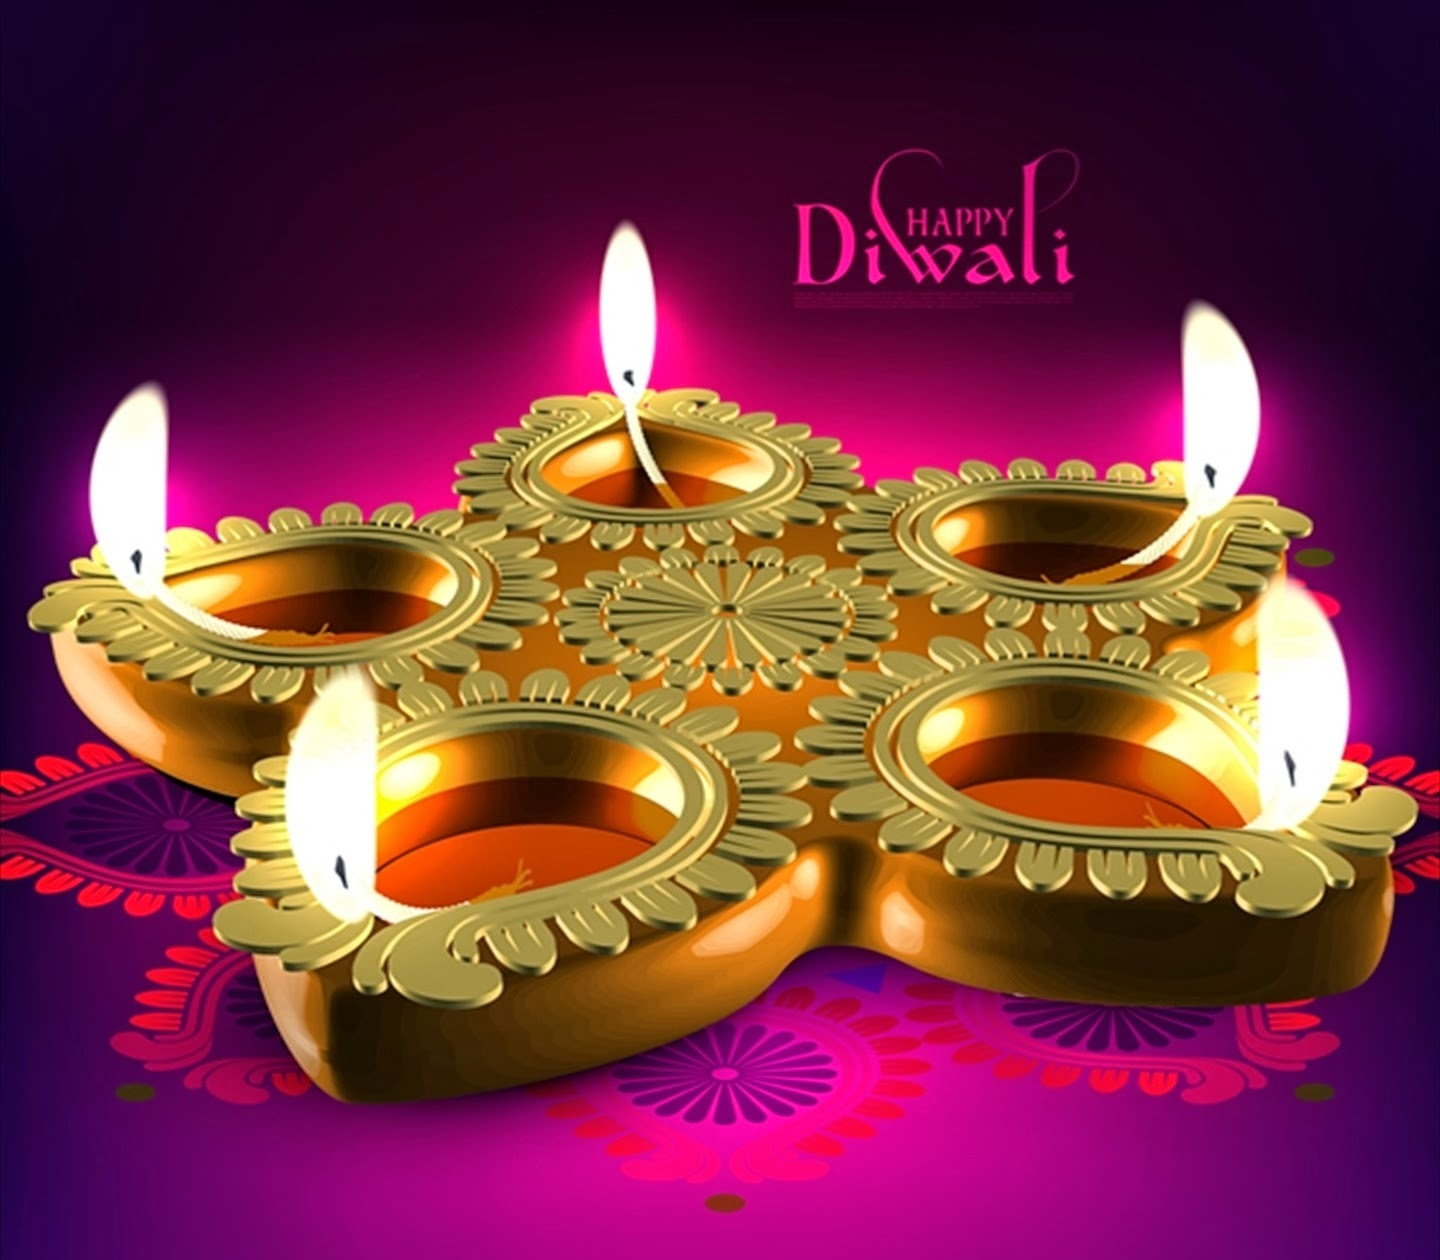 diwali wallpaper 2014 hd free download